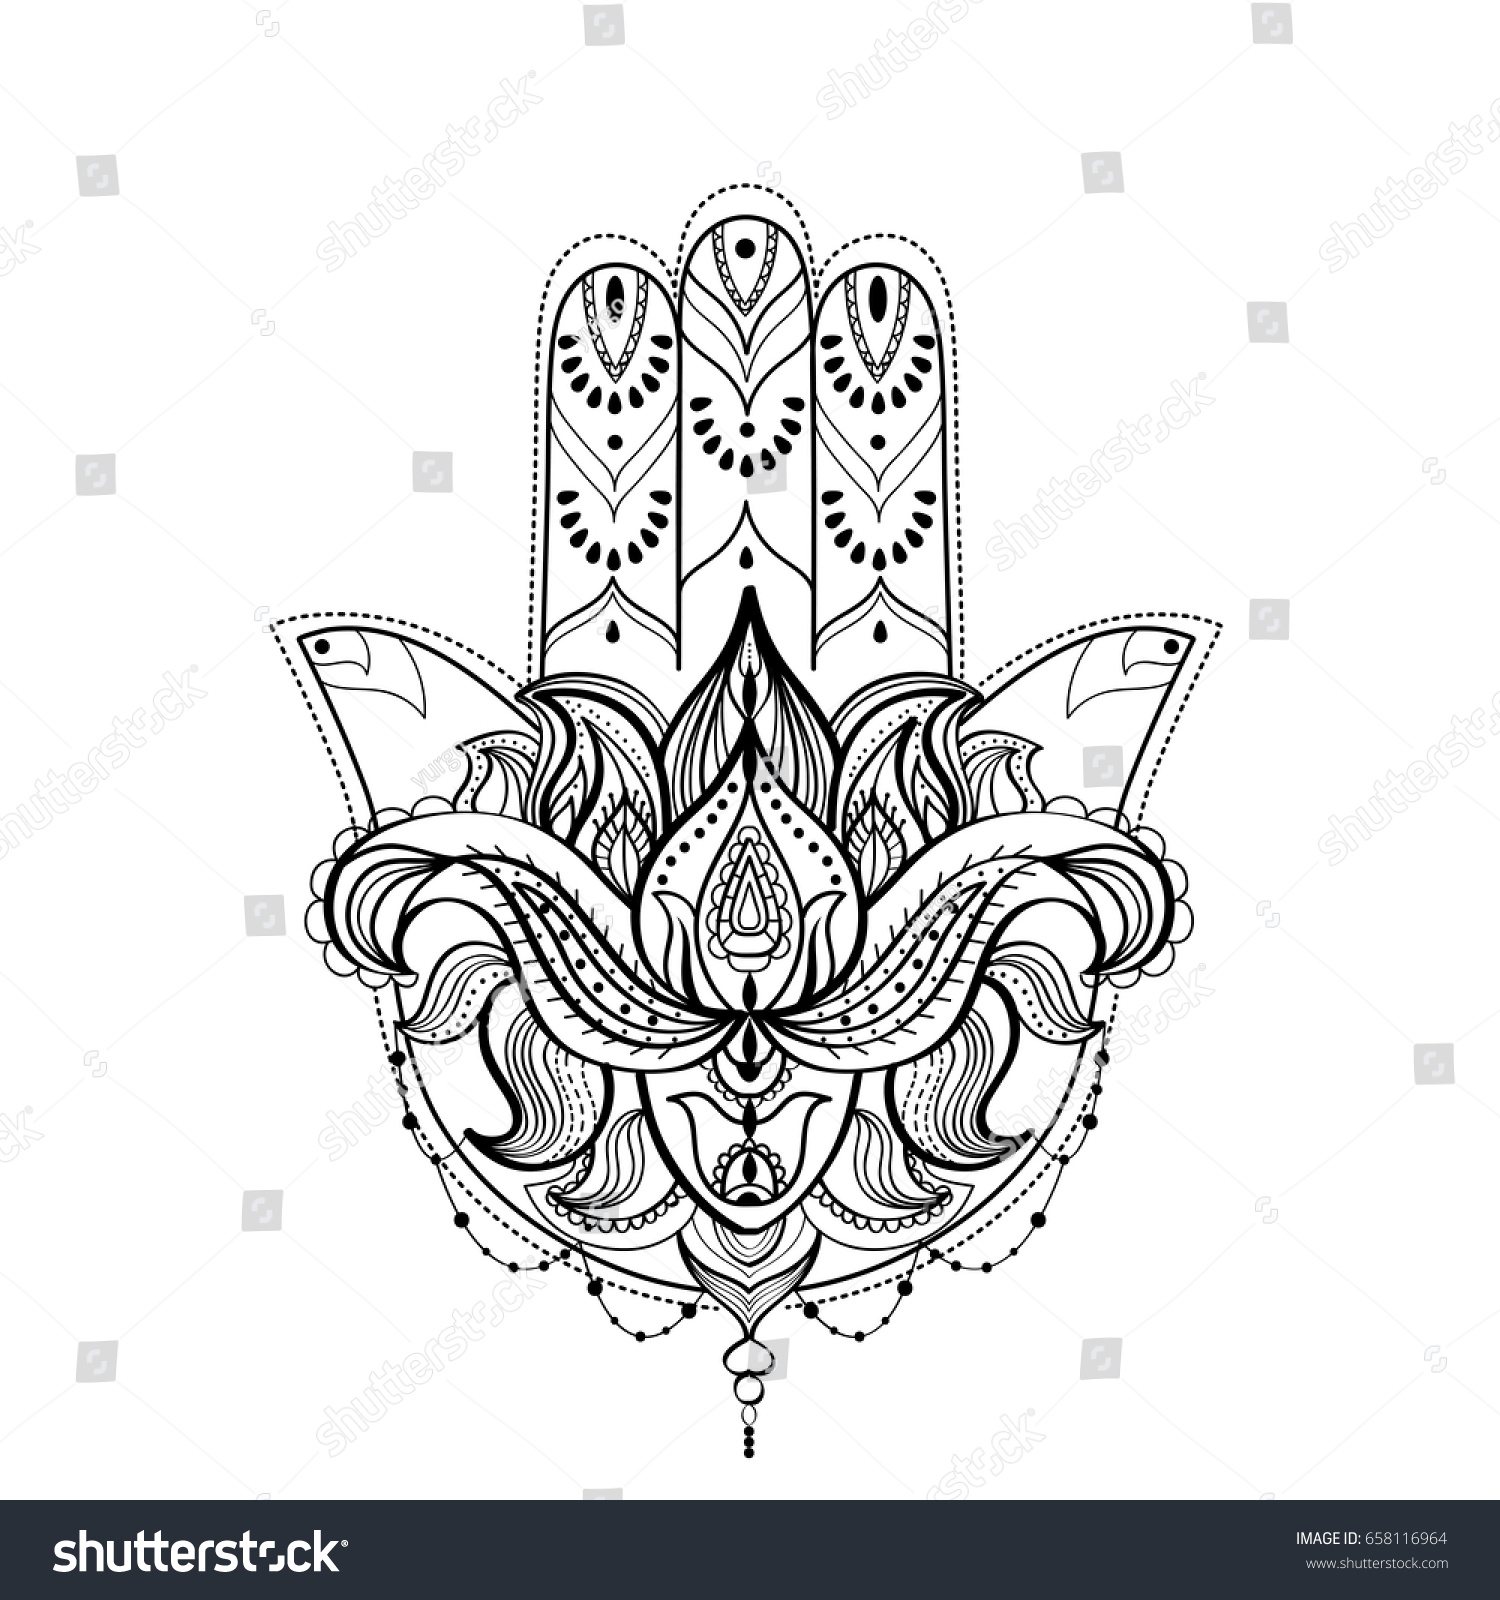 Hamsa hand lotus flower black white stock vector 658116964 hamsa hand with lotus flower black and white illustration for a tattoo or an adult izmirmasajfo Choice Image